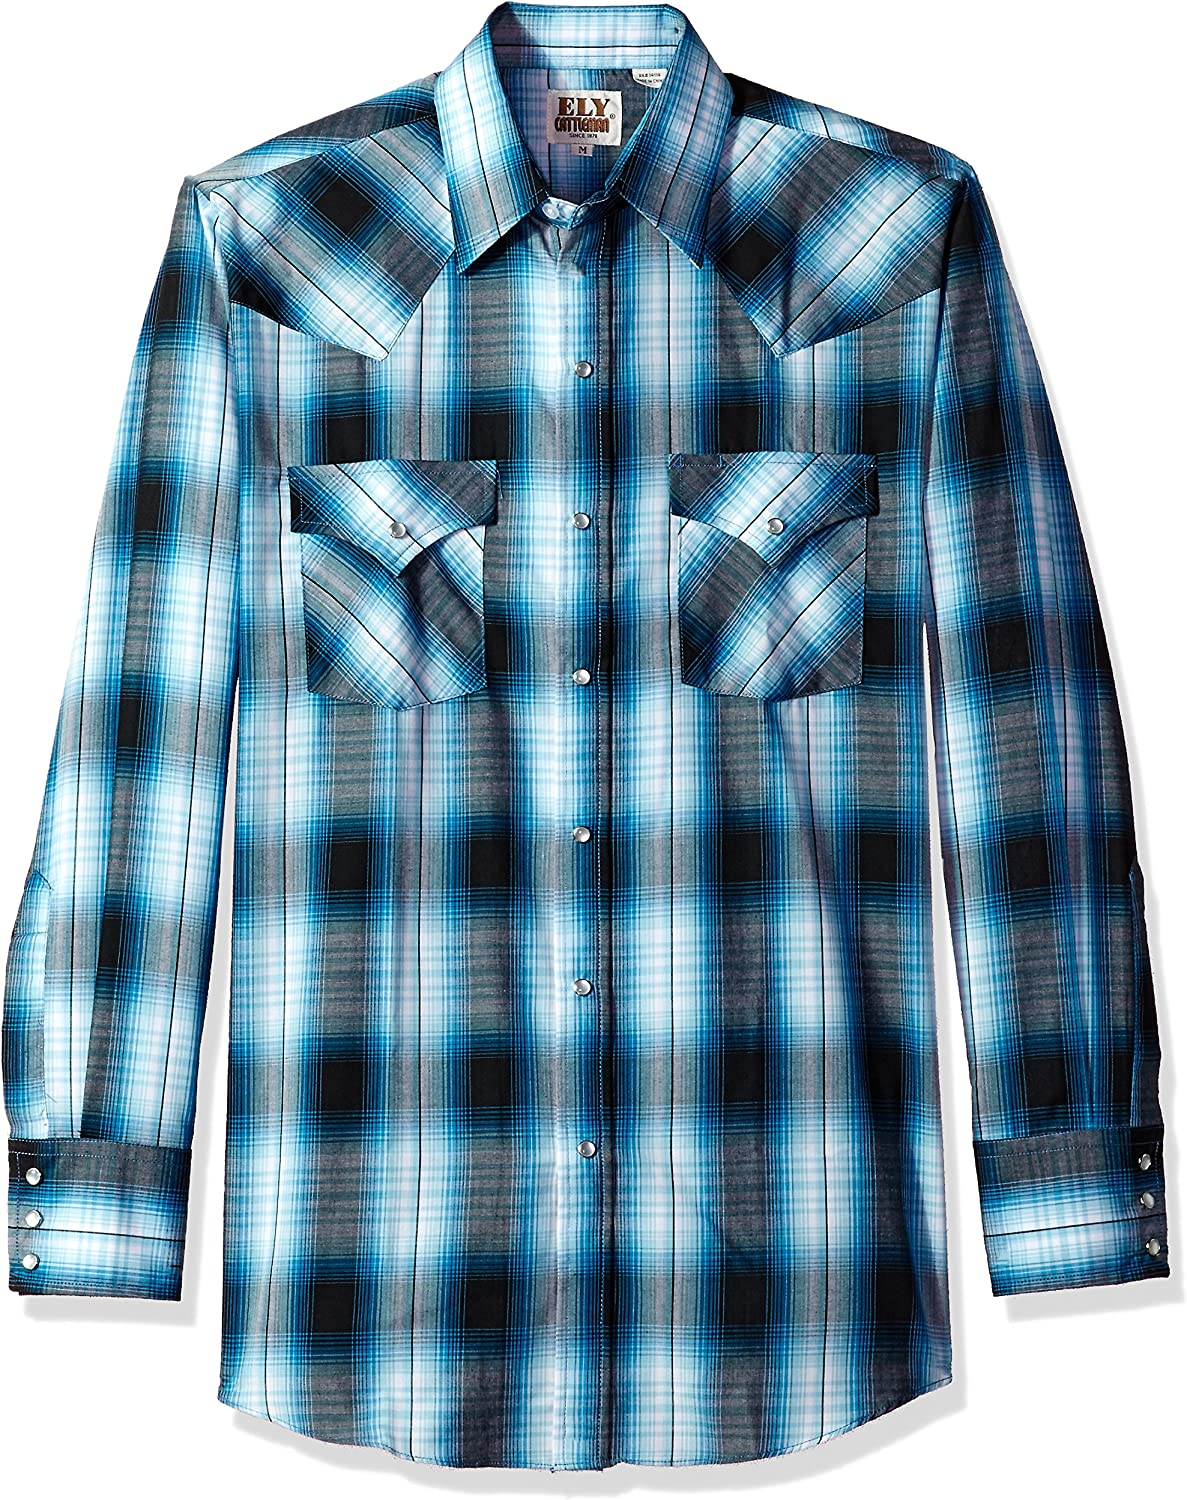 ELY CATTLEMAN Men's Long Sleeve Plaid Western Shirt